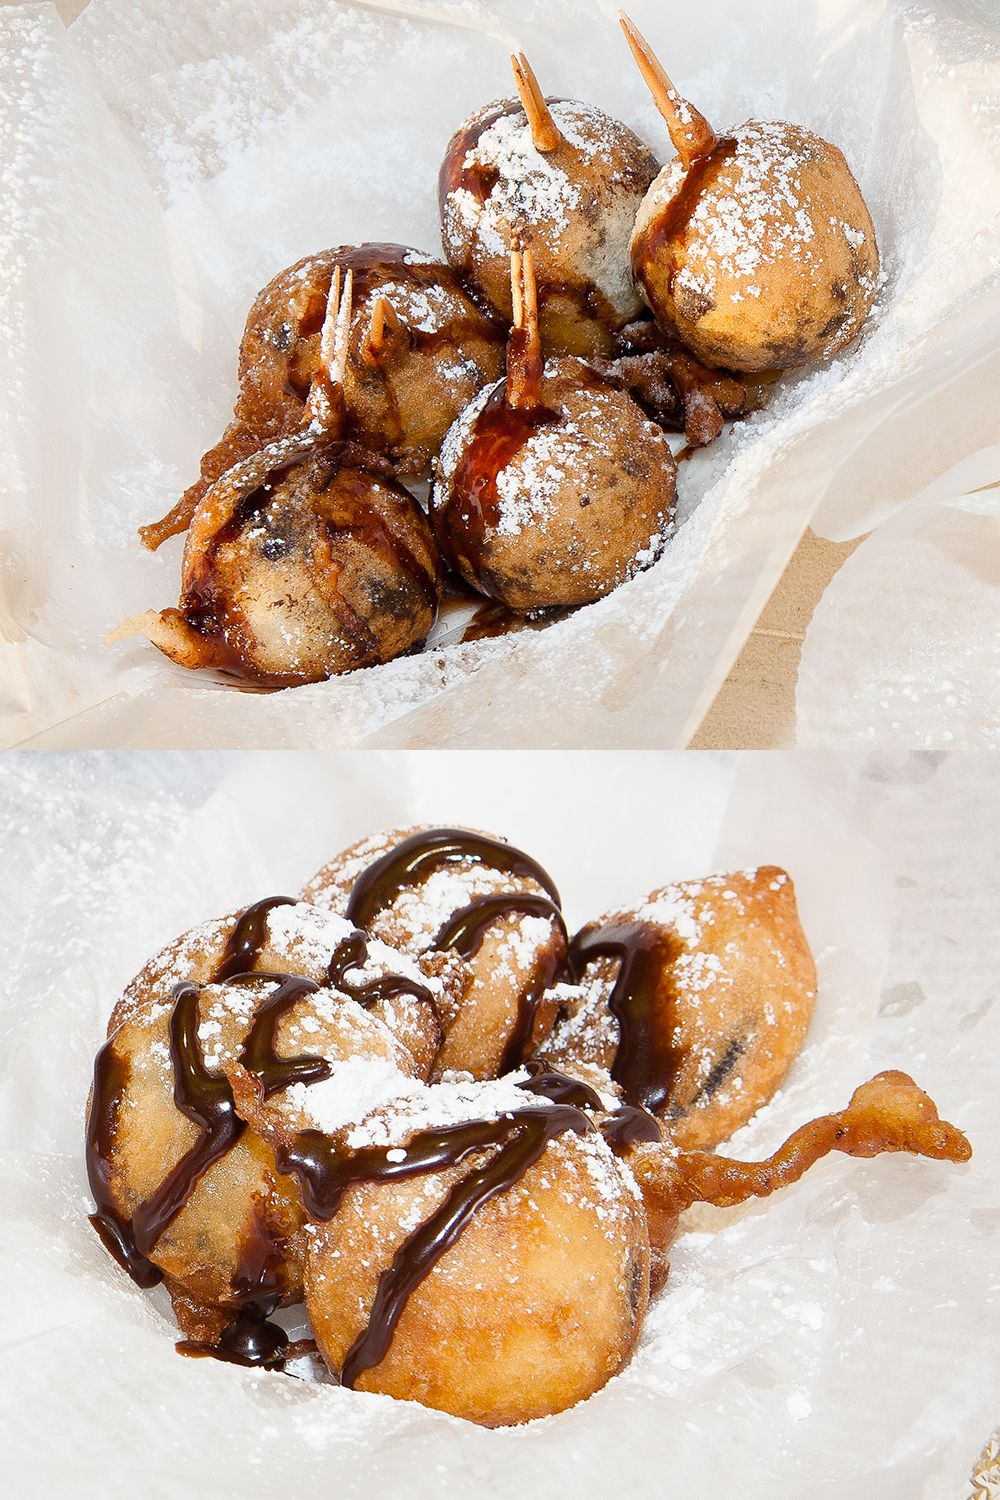 "By far, deep-fried Oreos (bottom photo) are the most popular item Brian ""the deep-fry guy"" Shenkman sells at his stands—and for good reason: When deep-fried, the Oreo basically liquifies, getting you as close to Oreo cookie dough (AKA nirvana) as you can get. If you love that, you've got to try the deep-fried buckeyes, which are essentially balls of peanut butter dough dipped in chocolate, then batter-dipped and fried. It's like the love child of a Reese's Cup and cookie dough."